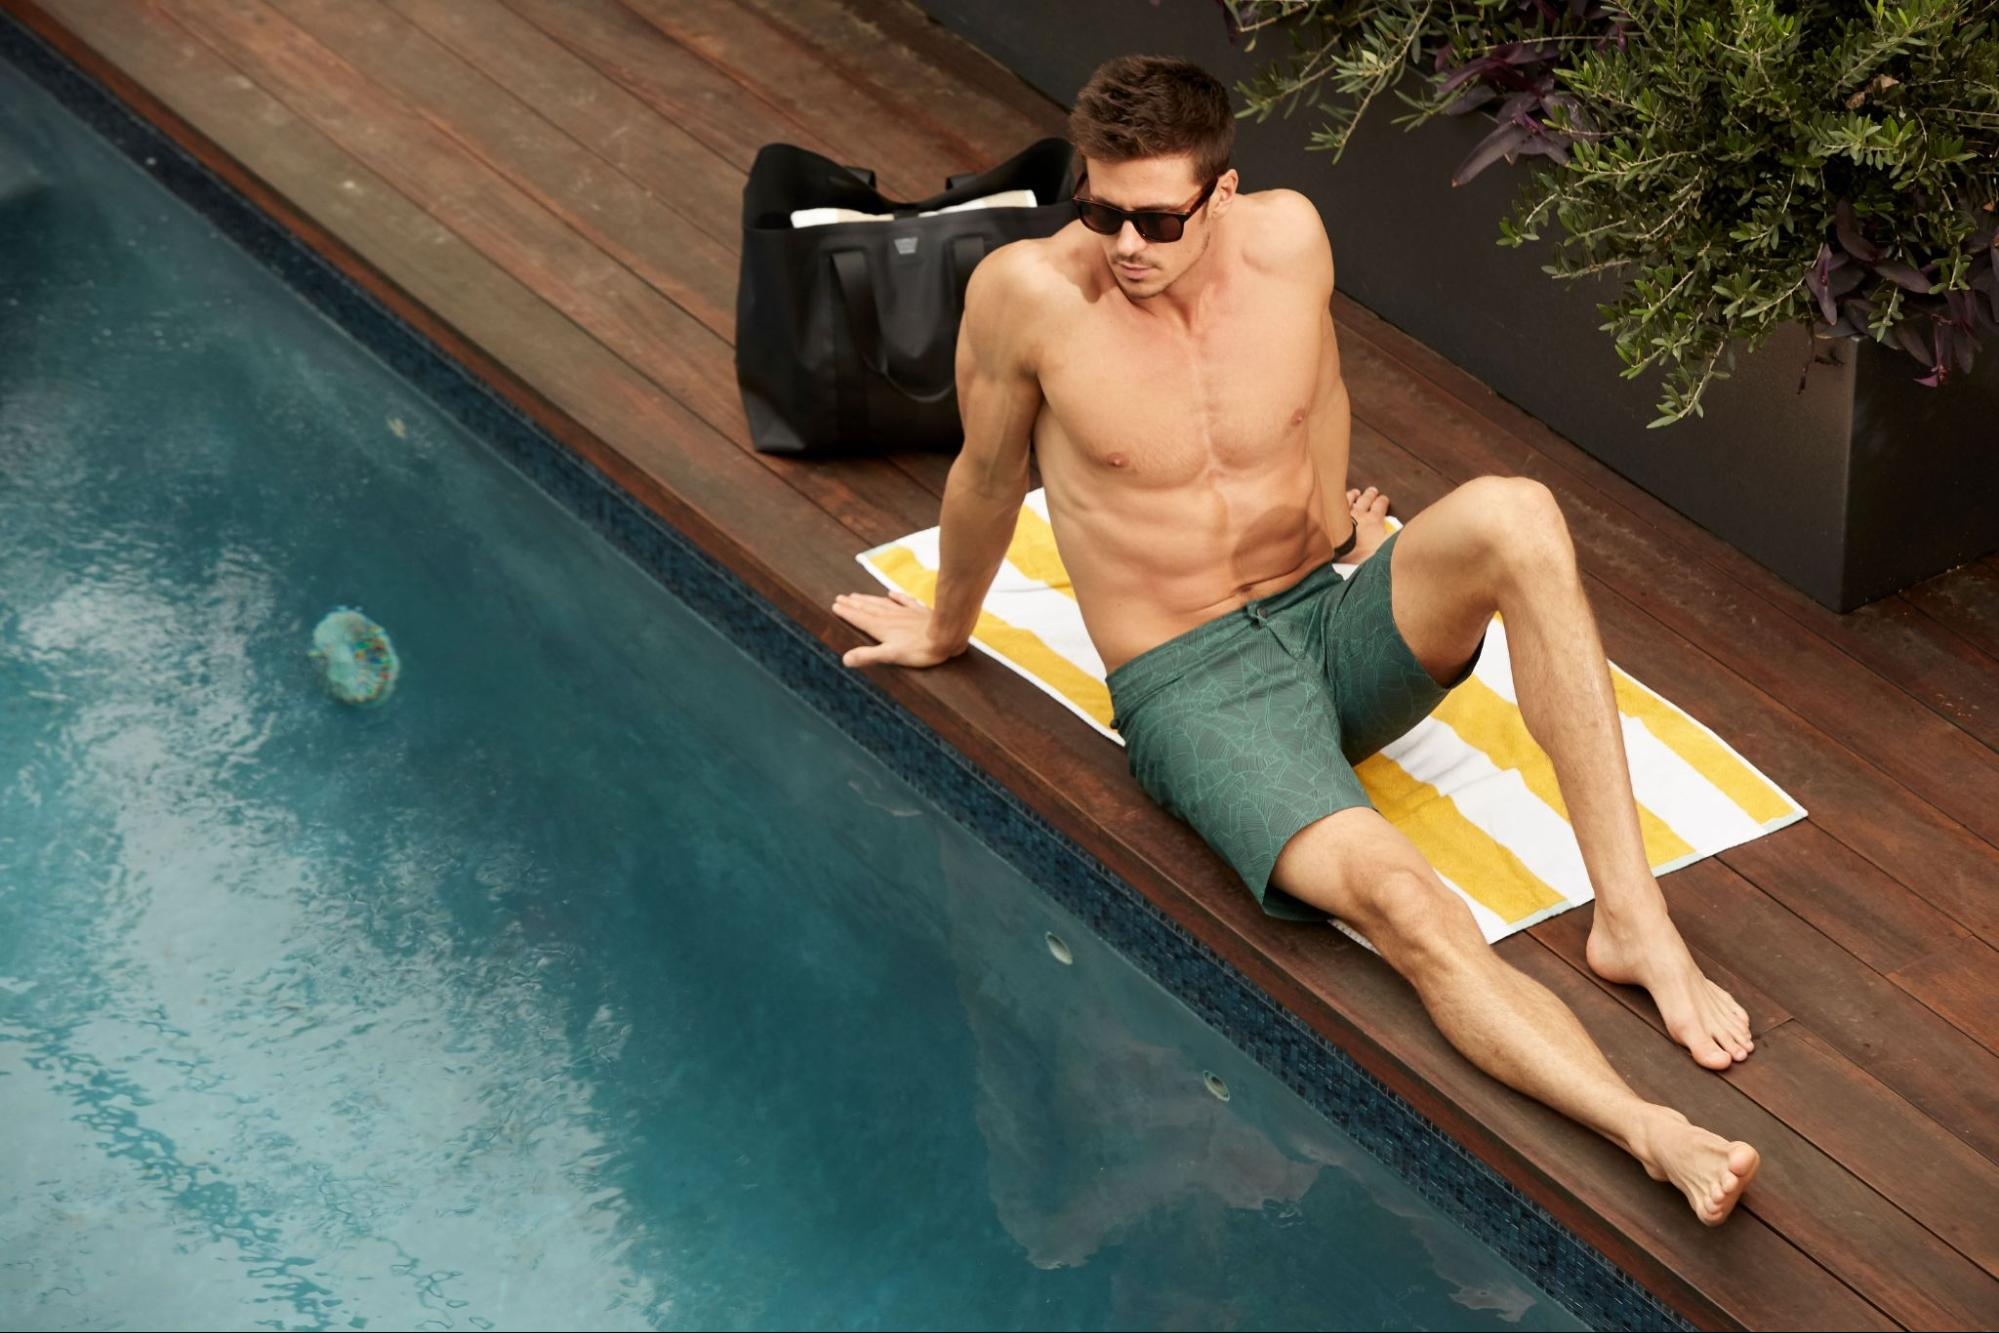 A model poses by a pool next to a travel tote by Mack Weldon.